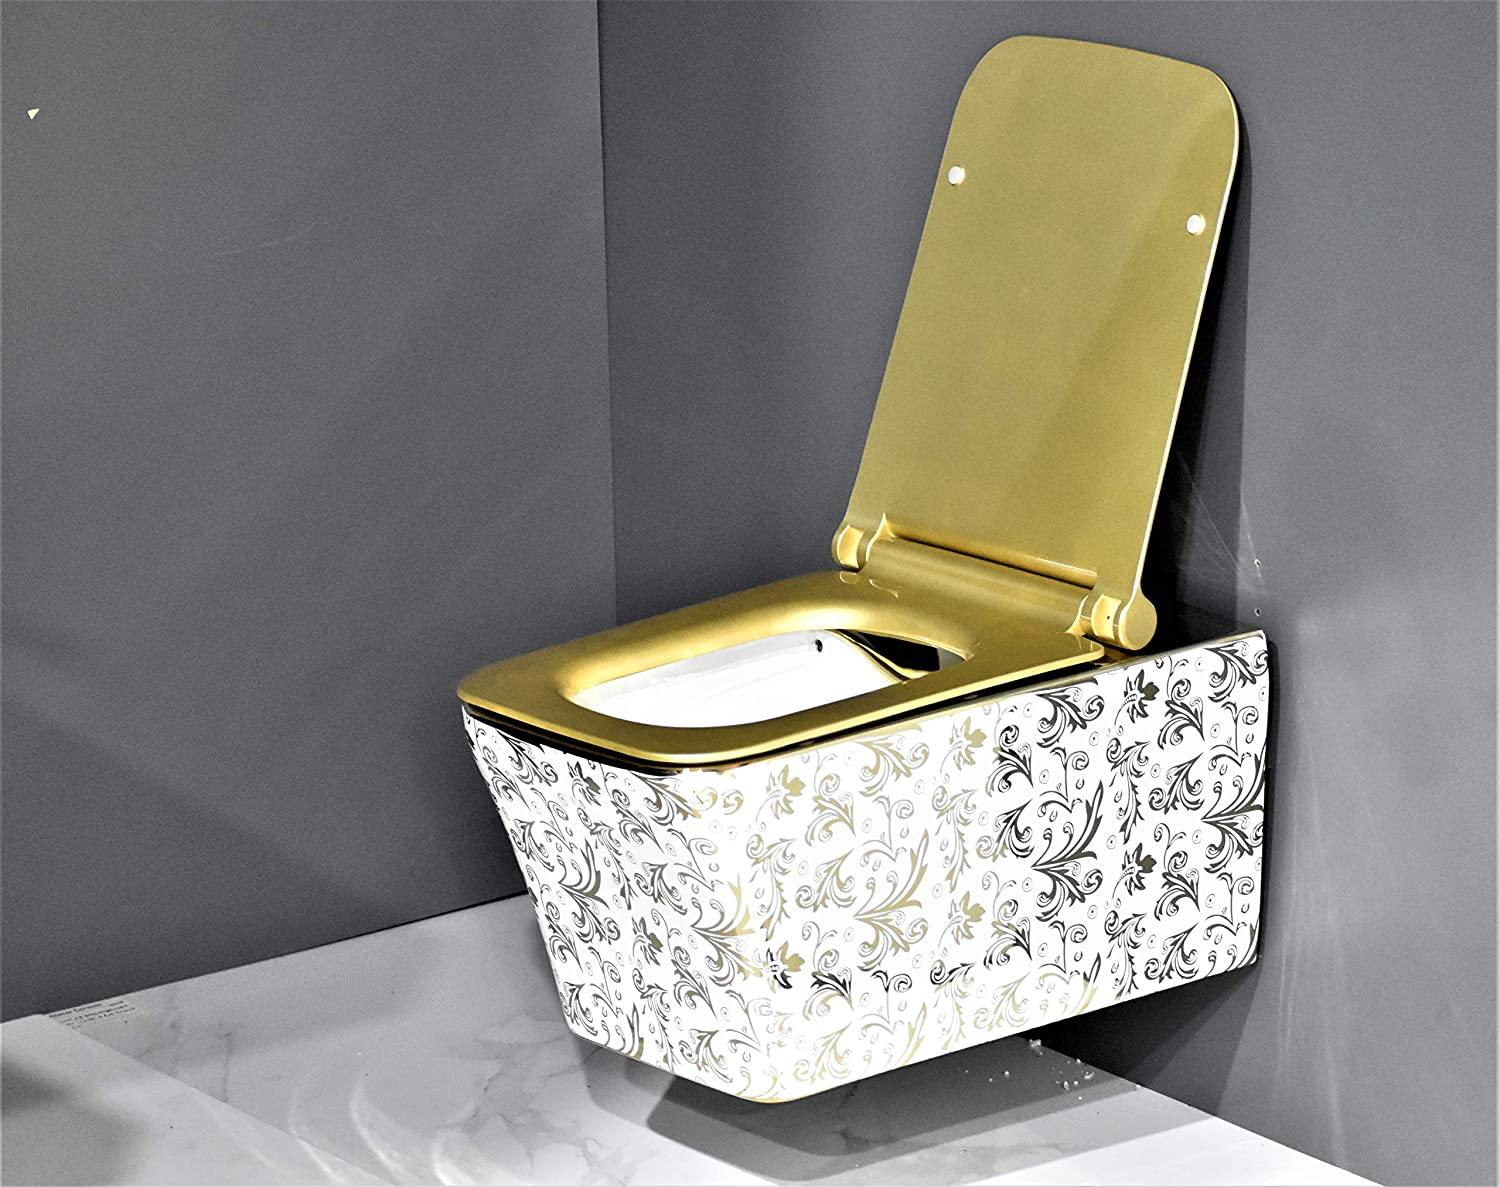 Wall Hung Toilet Bowl Bathroom Square Toilet Bowl Wall Mount Toilet With Rimless Flush 53.5 x 36 x 35.5 CM Gold Leaf Pattern